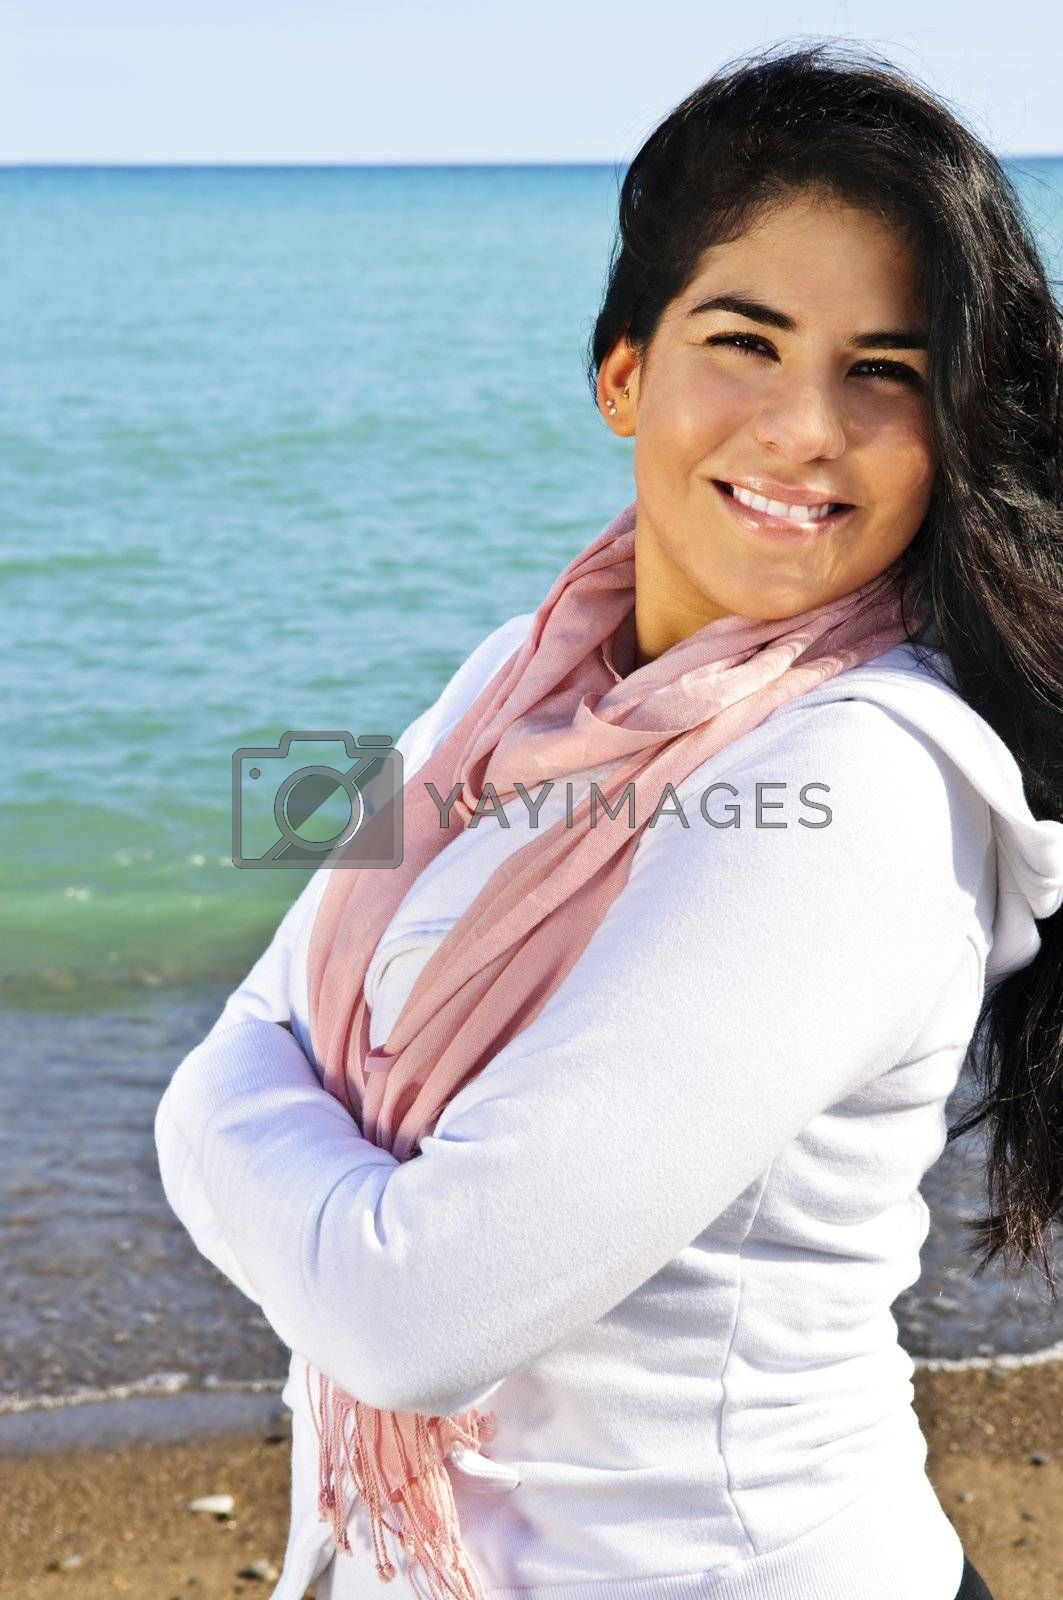 Royalty free image of Beautiful young woman at beach by elenathewise